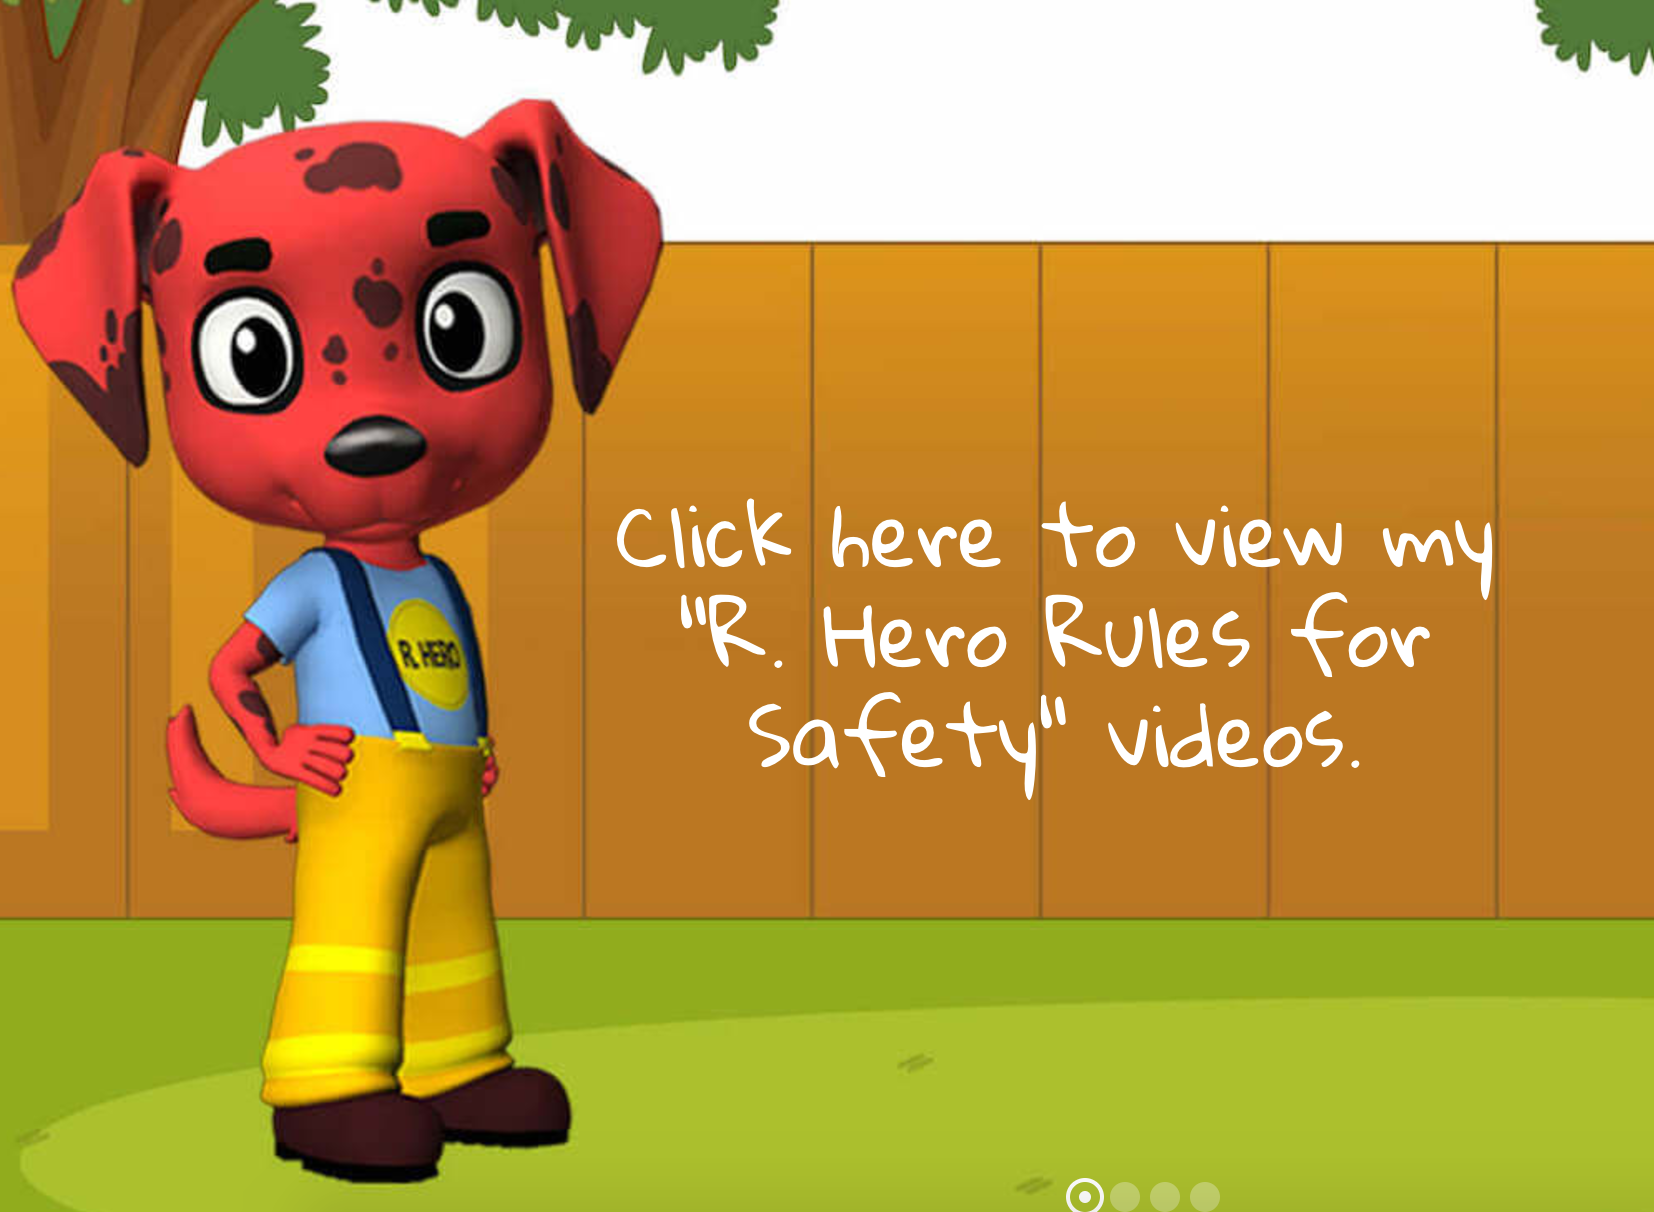 This cartoon fire dog promotes an easy-to-remember safety plan for kids.